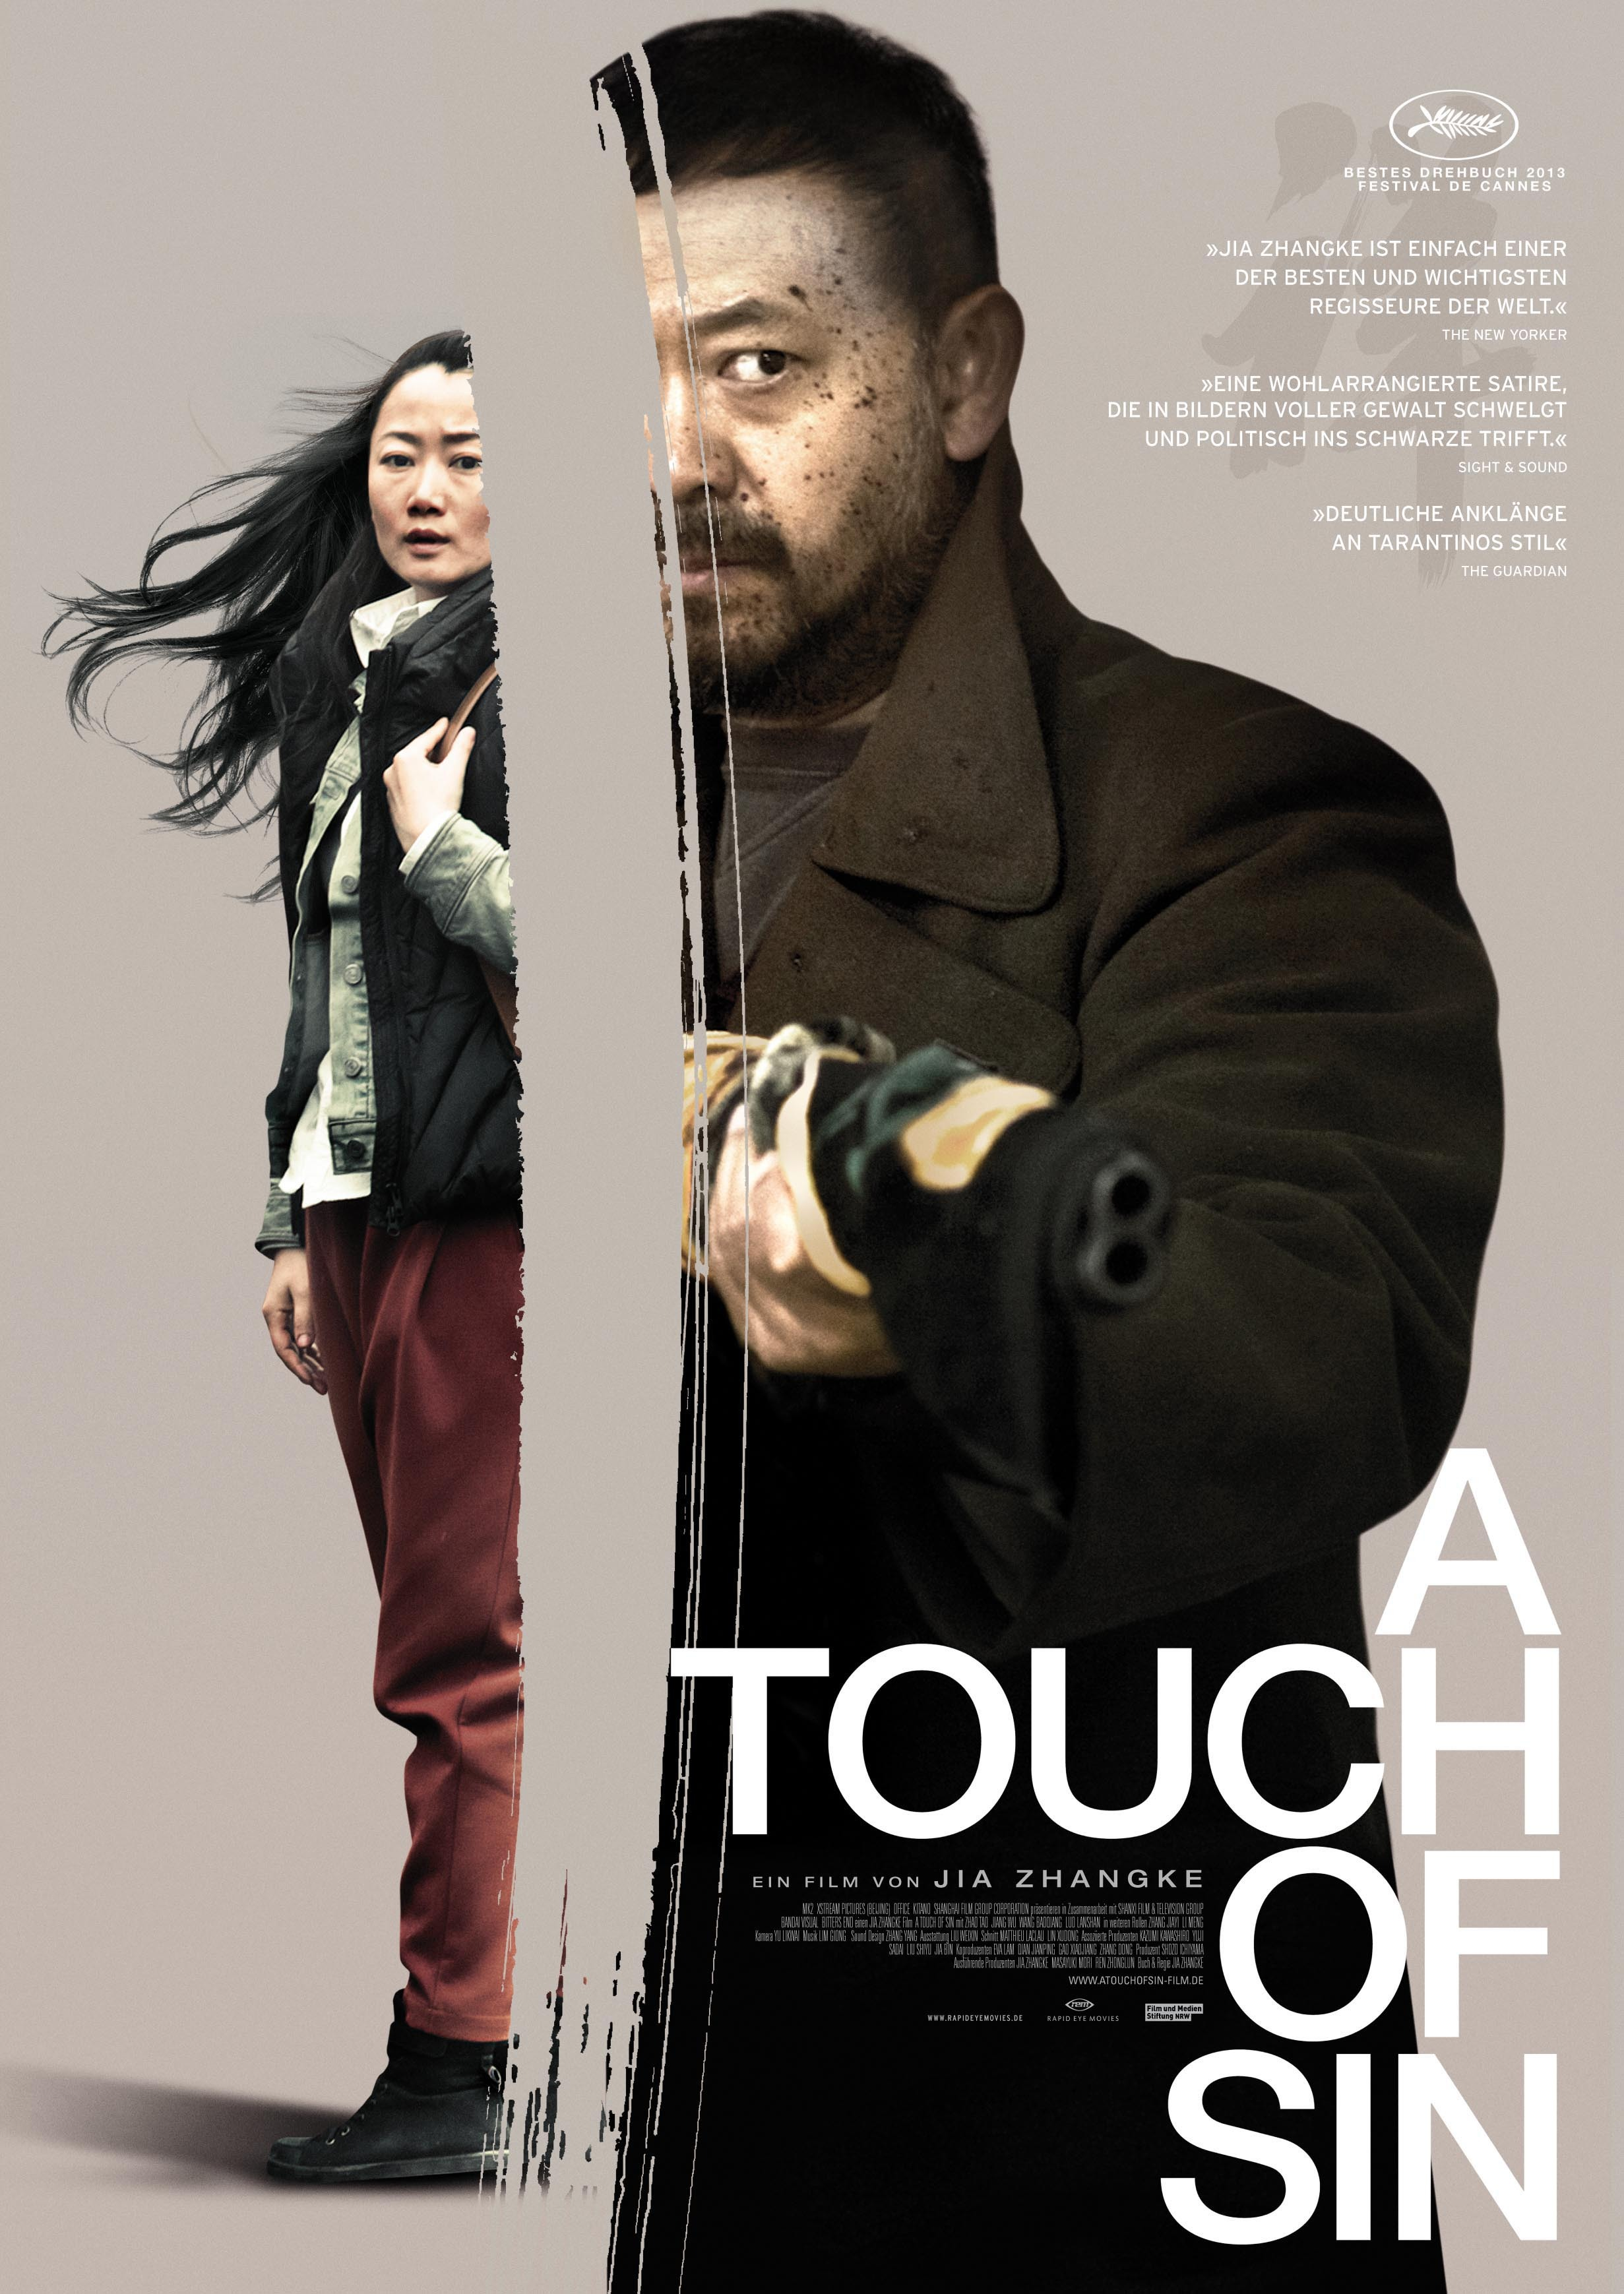 a-touch-of-sin-poster-1.jpg